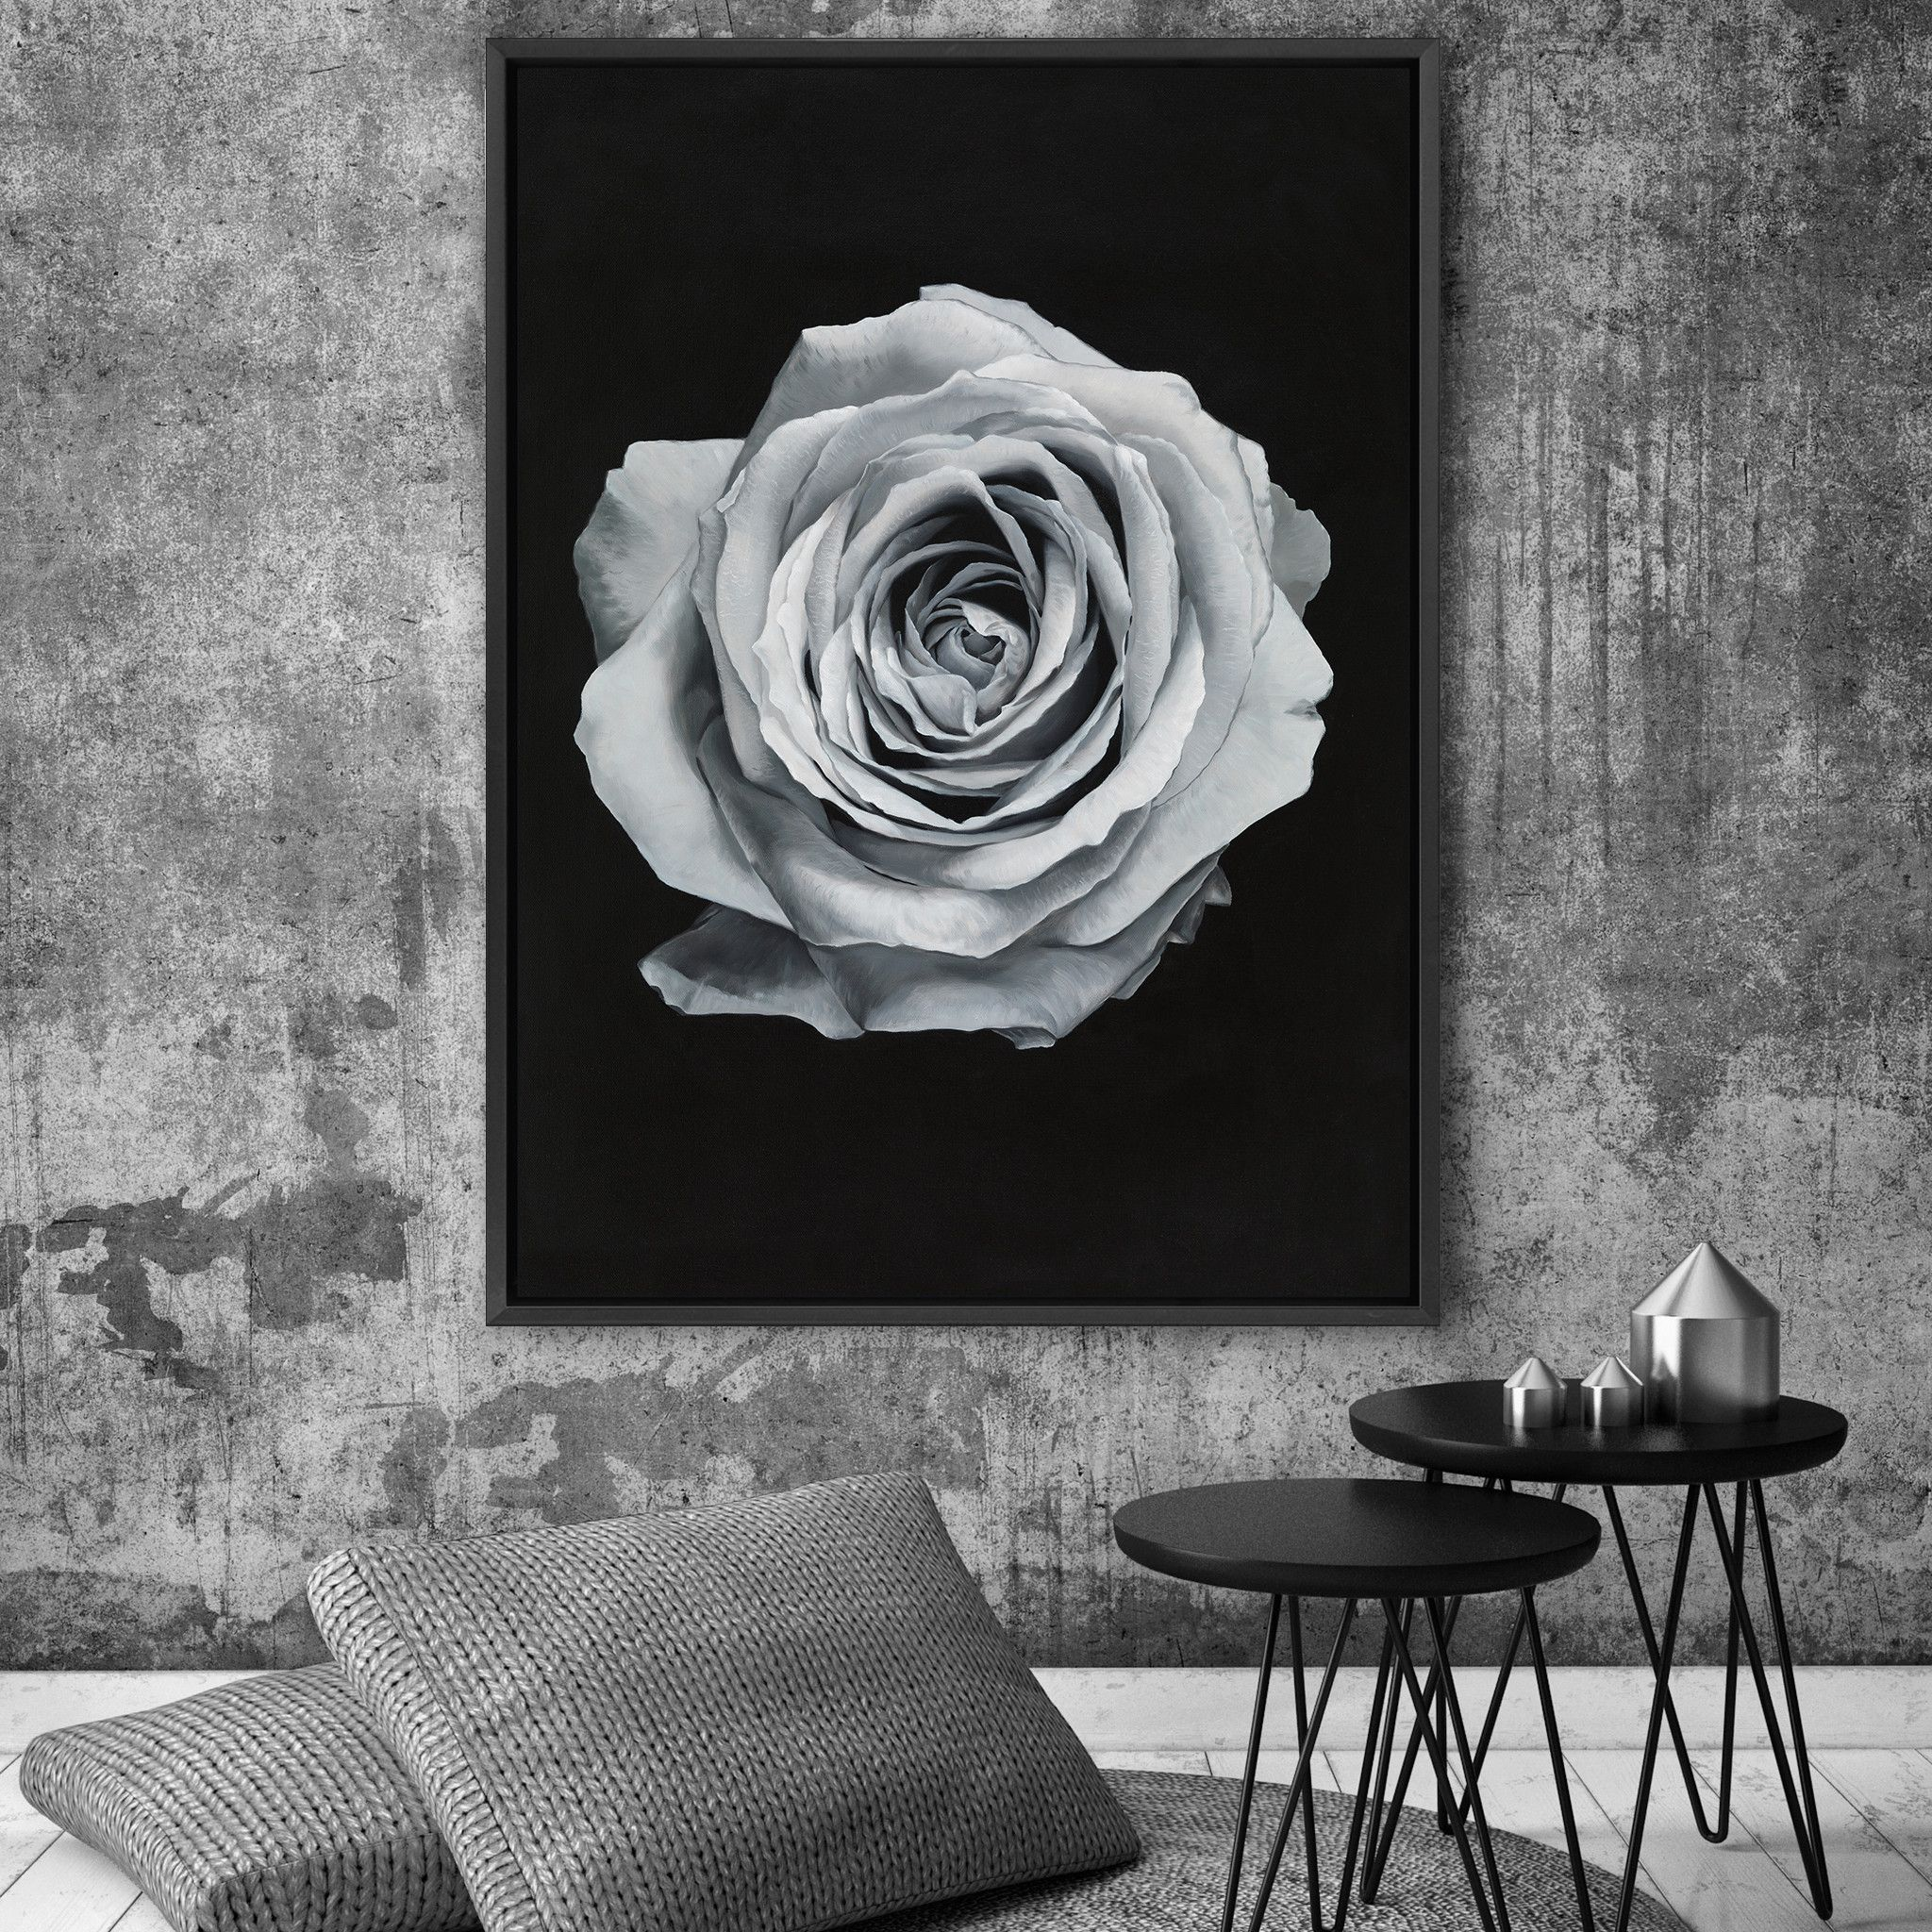 Featuring An Isolated Silver Rose Set Against A Dramatic Black Background This Canvas Print Was Originally Hand Painted By Our In House Artist Team